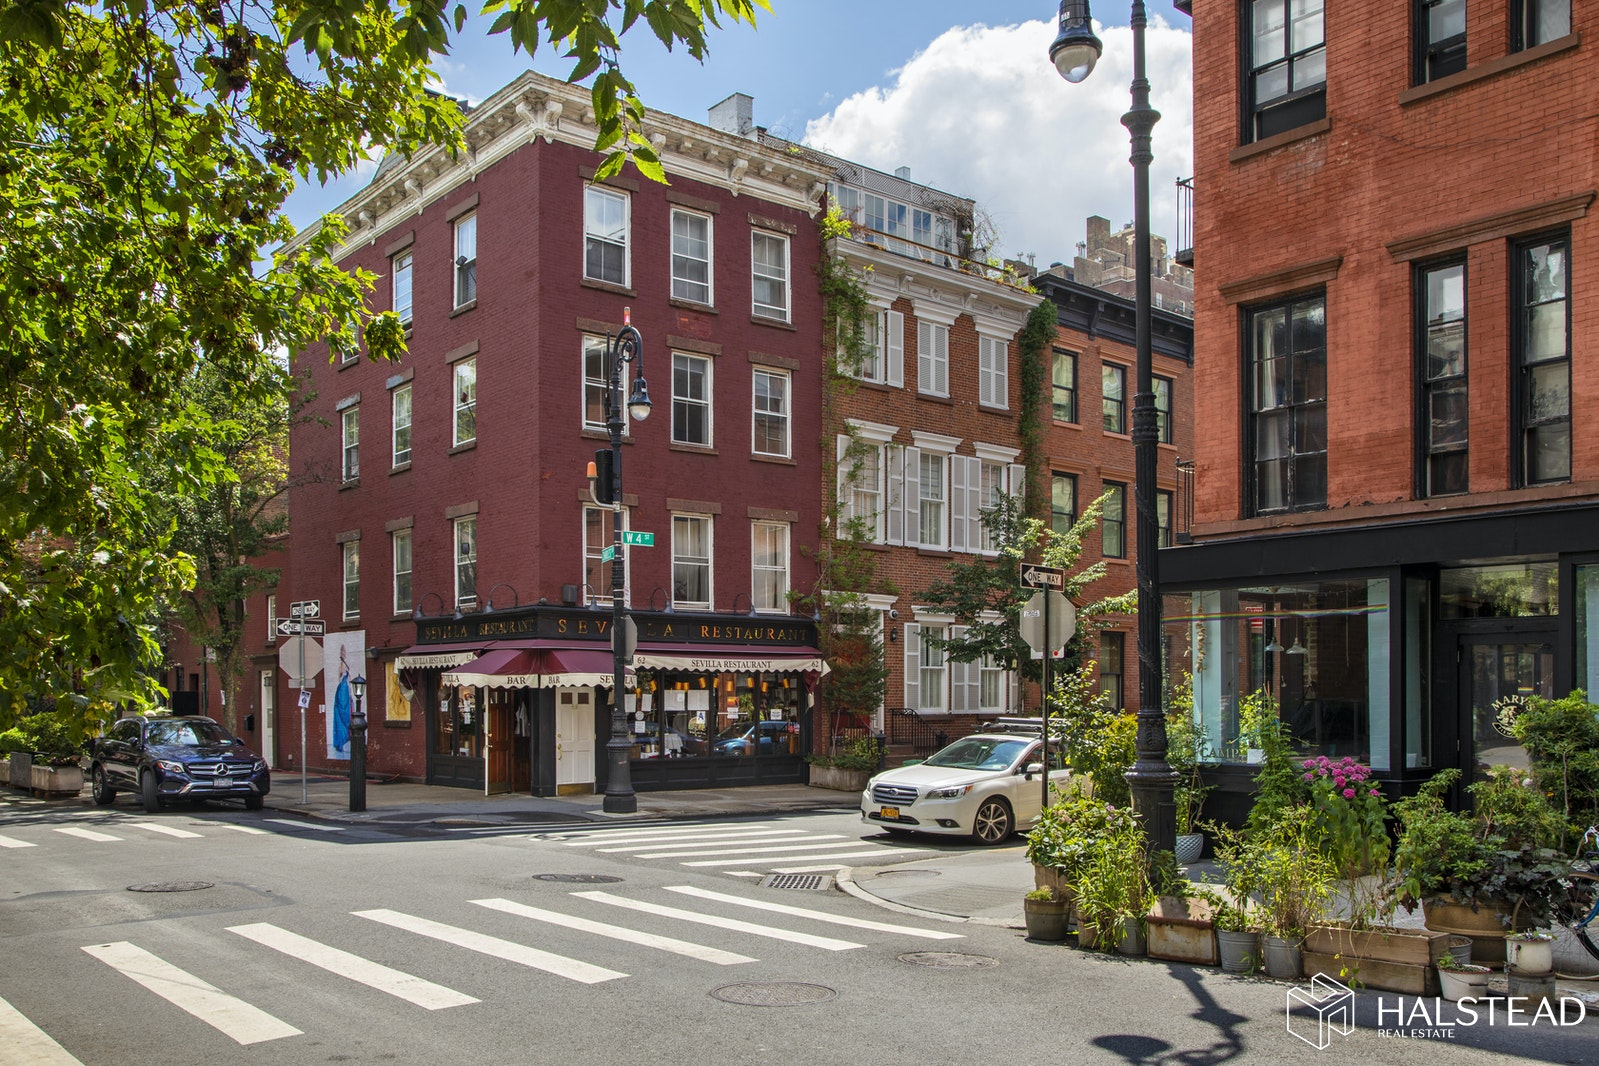 84 Charles Street 6 West Village Ny 10014 Id 20098134 For Sale Halstead Real Estate